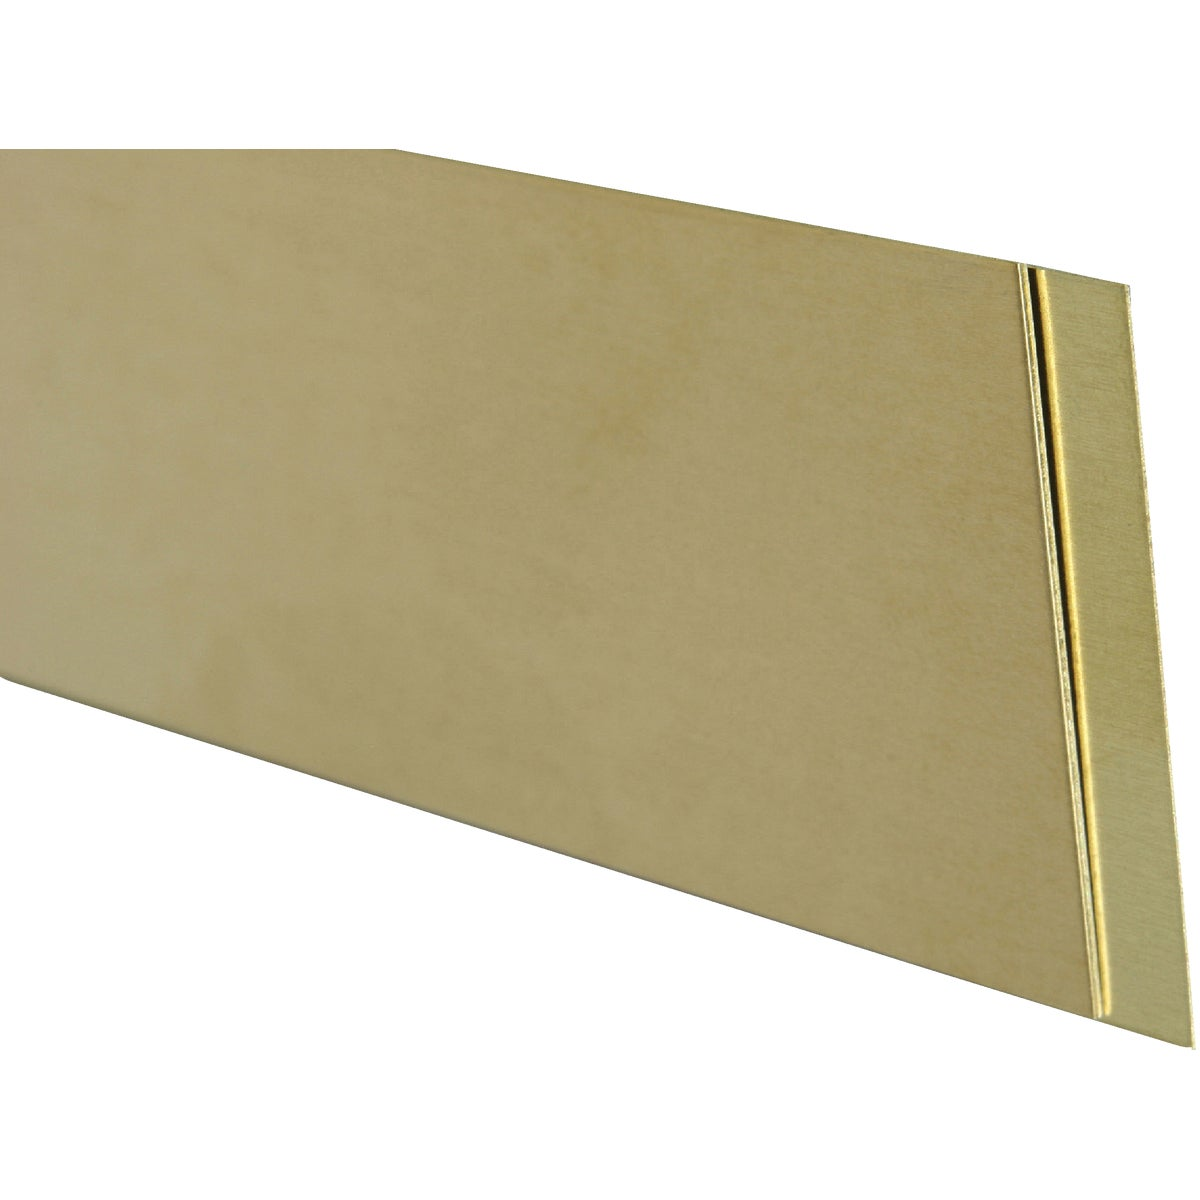 .093X1/2X12 BRASS STRIP - 8226 by K&s Precision Metals